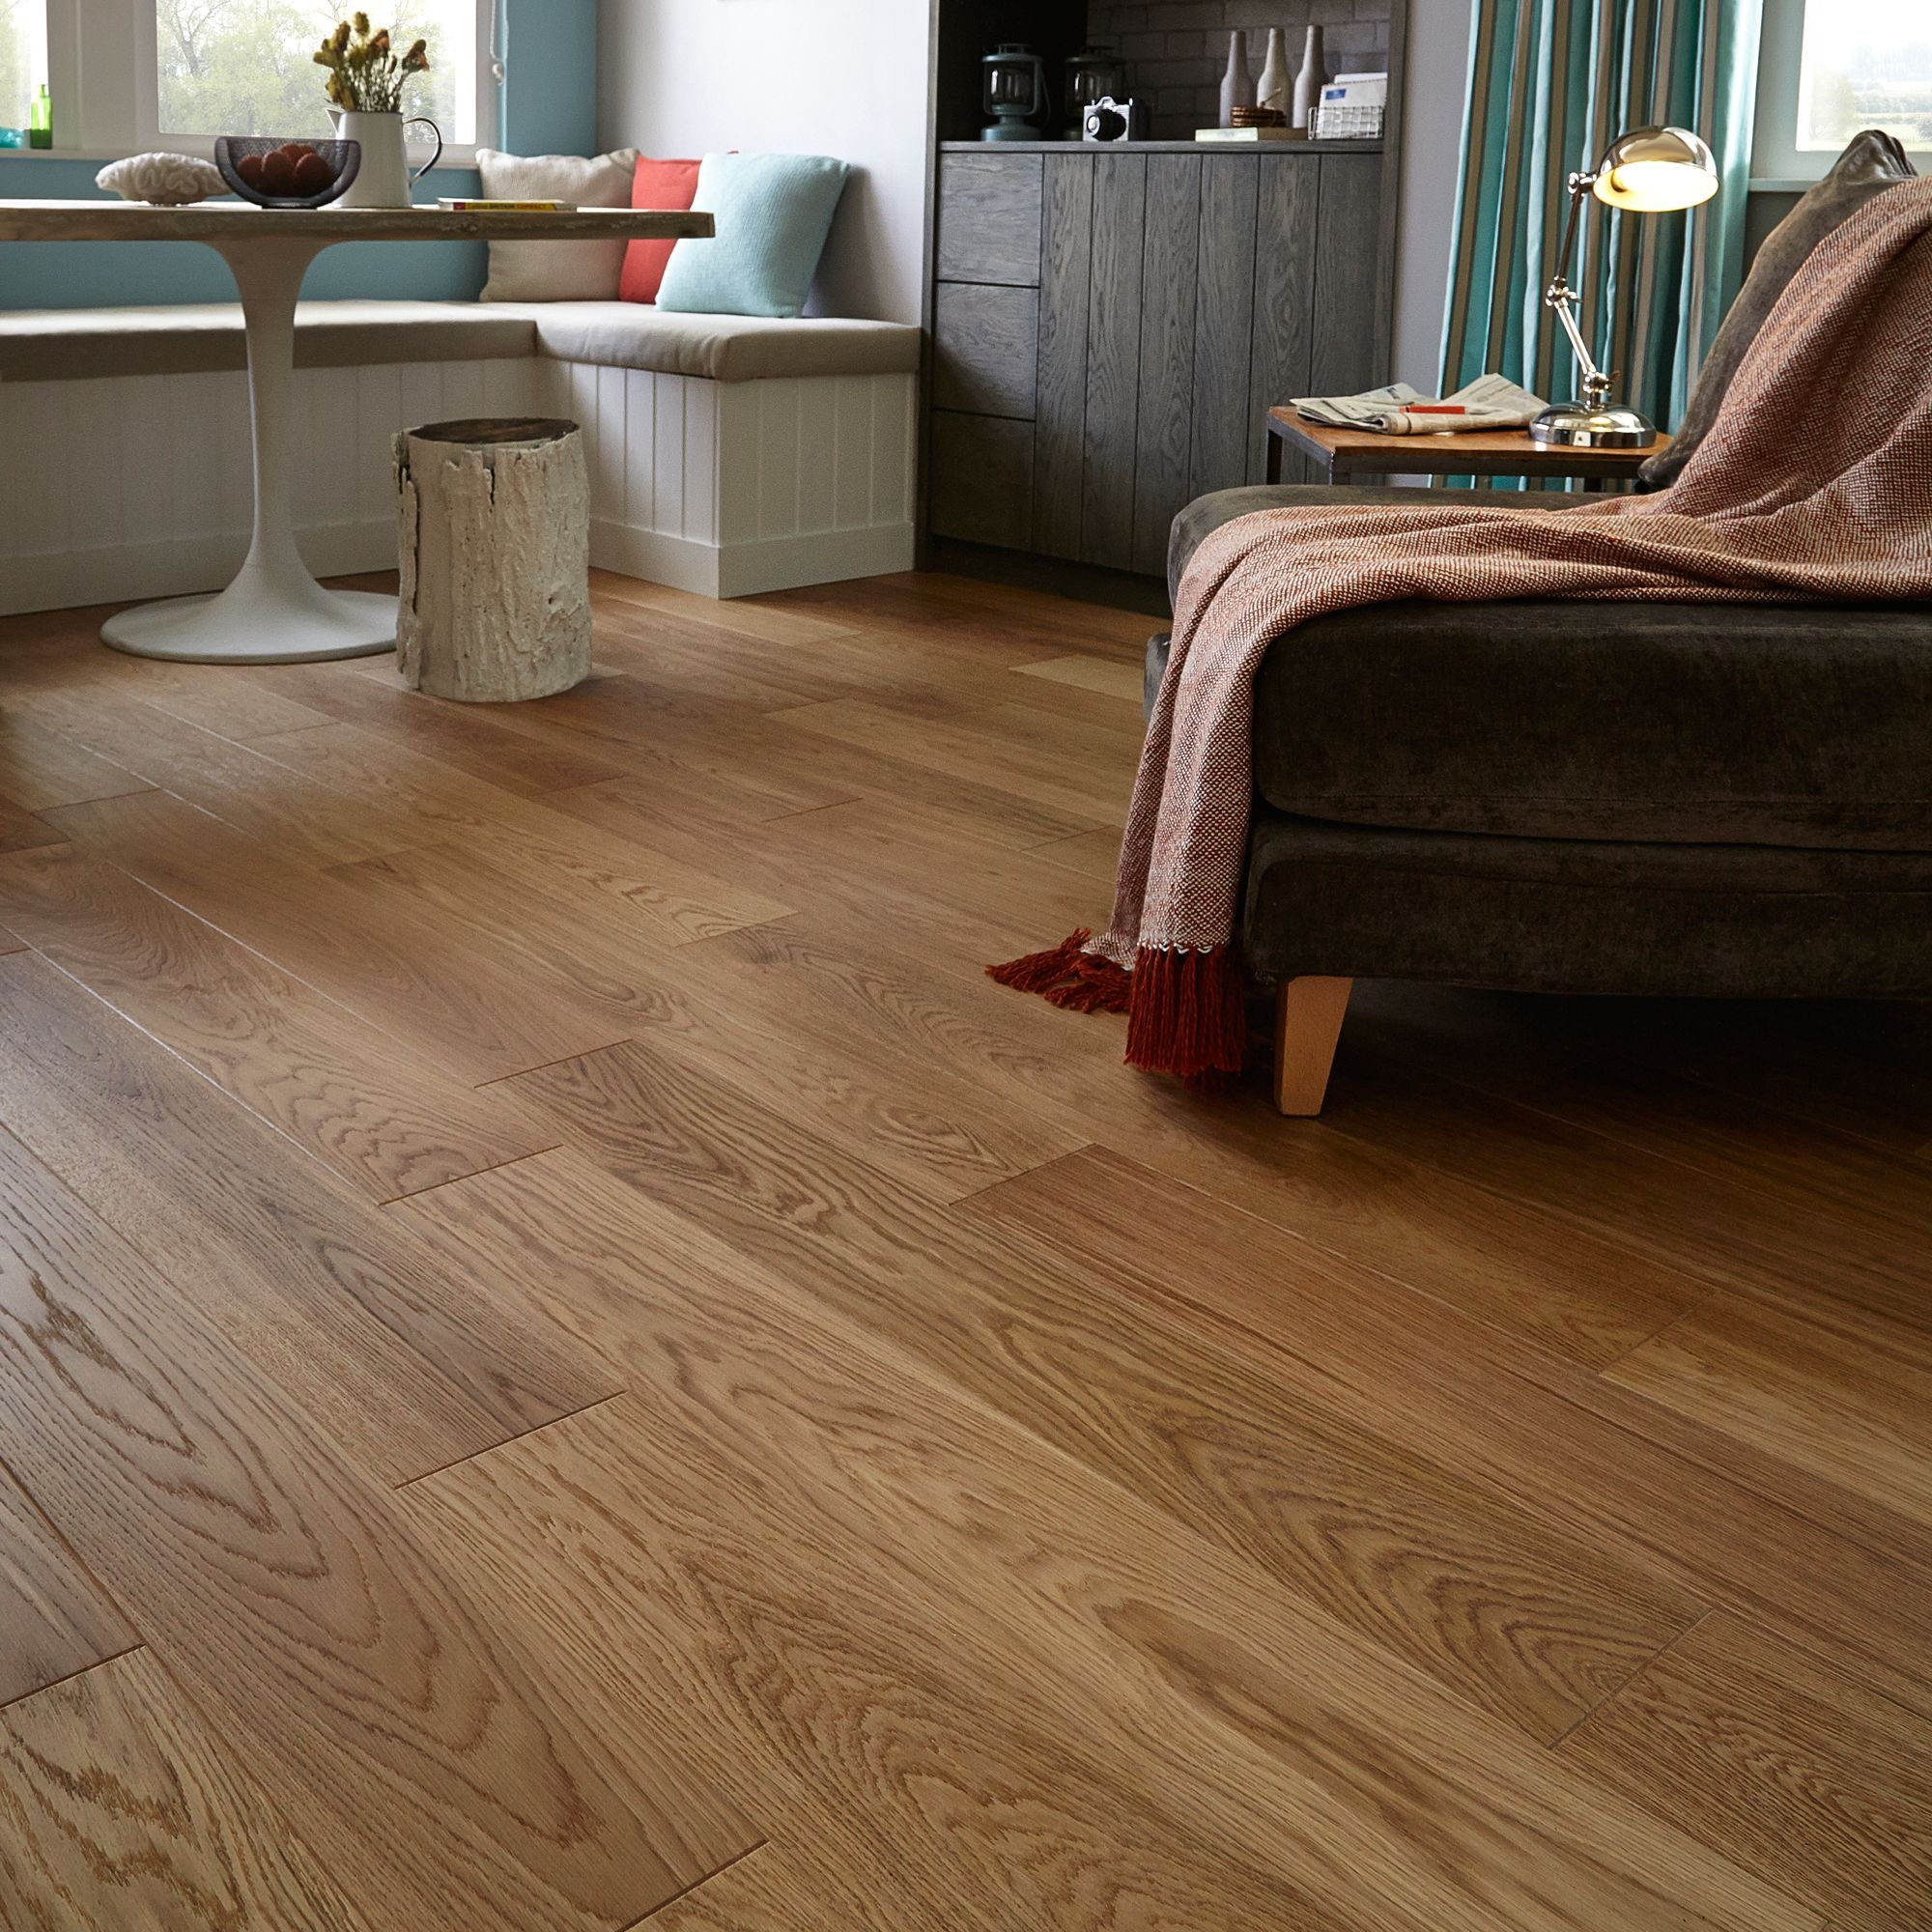 step cadenza natural oak real wood top layer flooring 1 m² pack